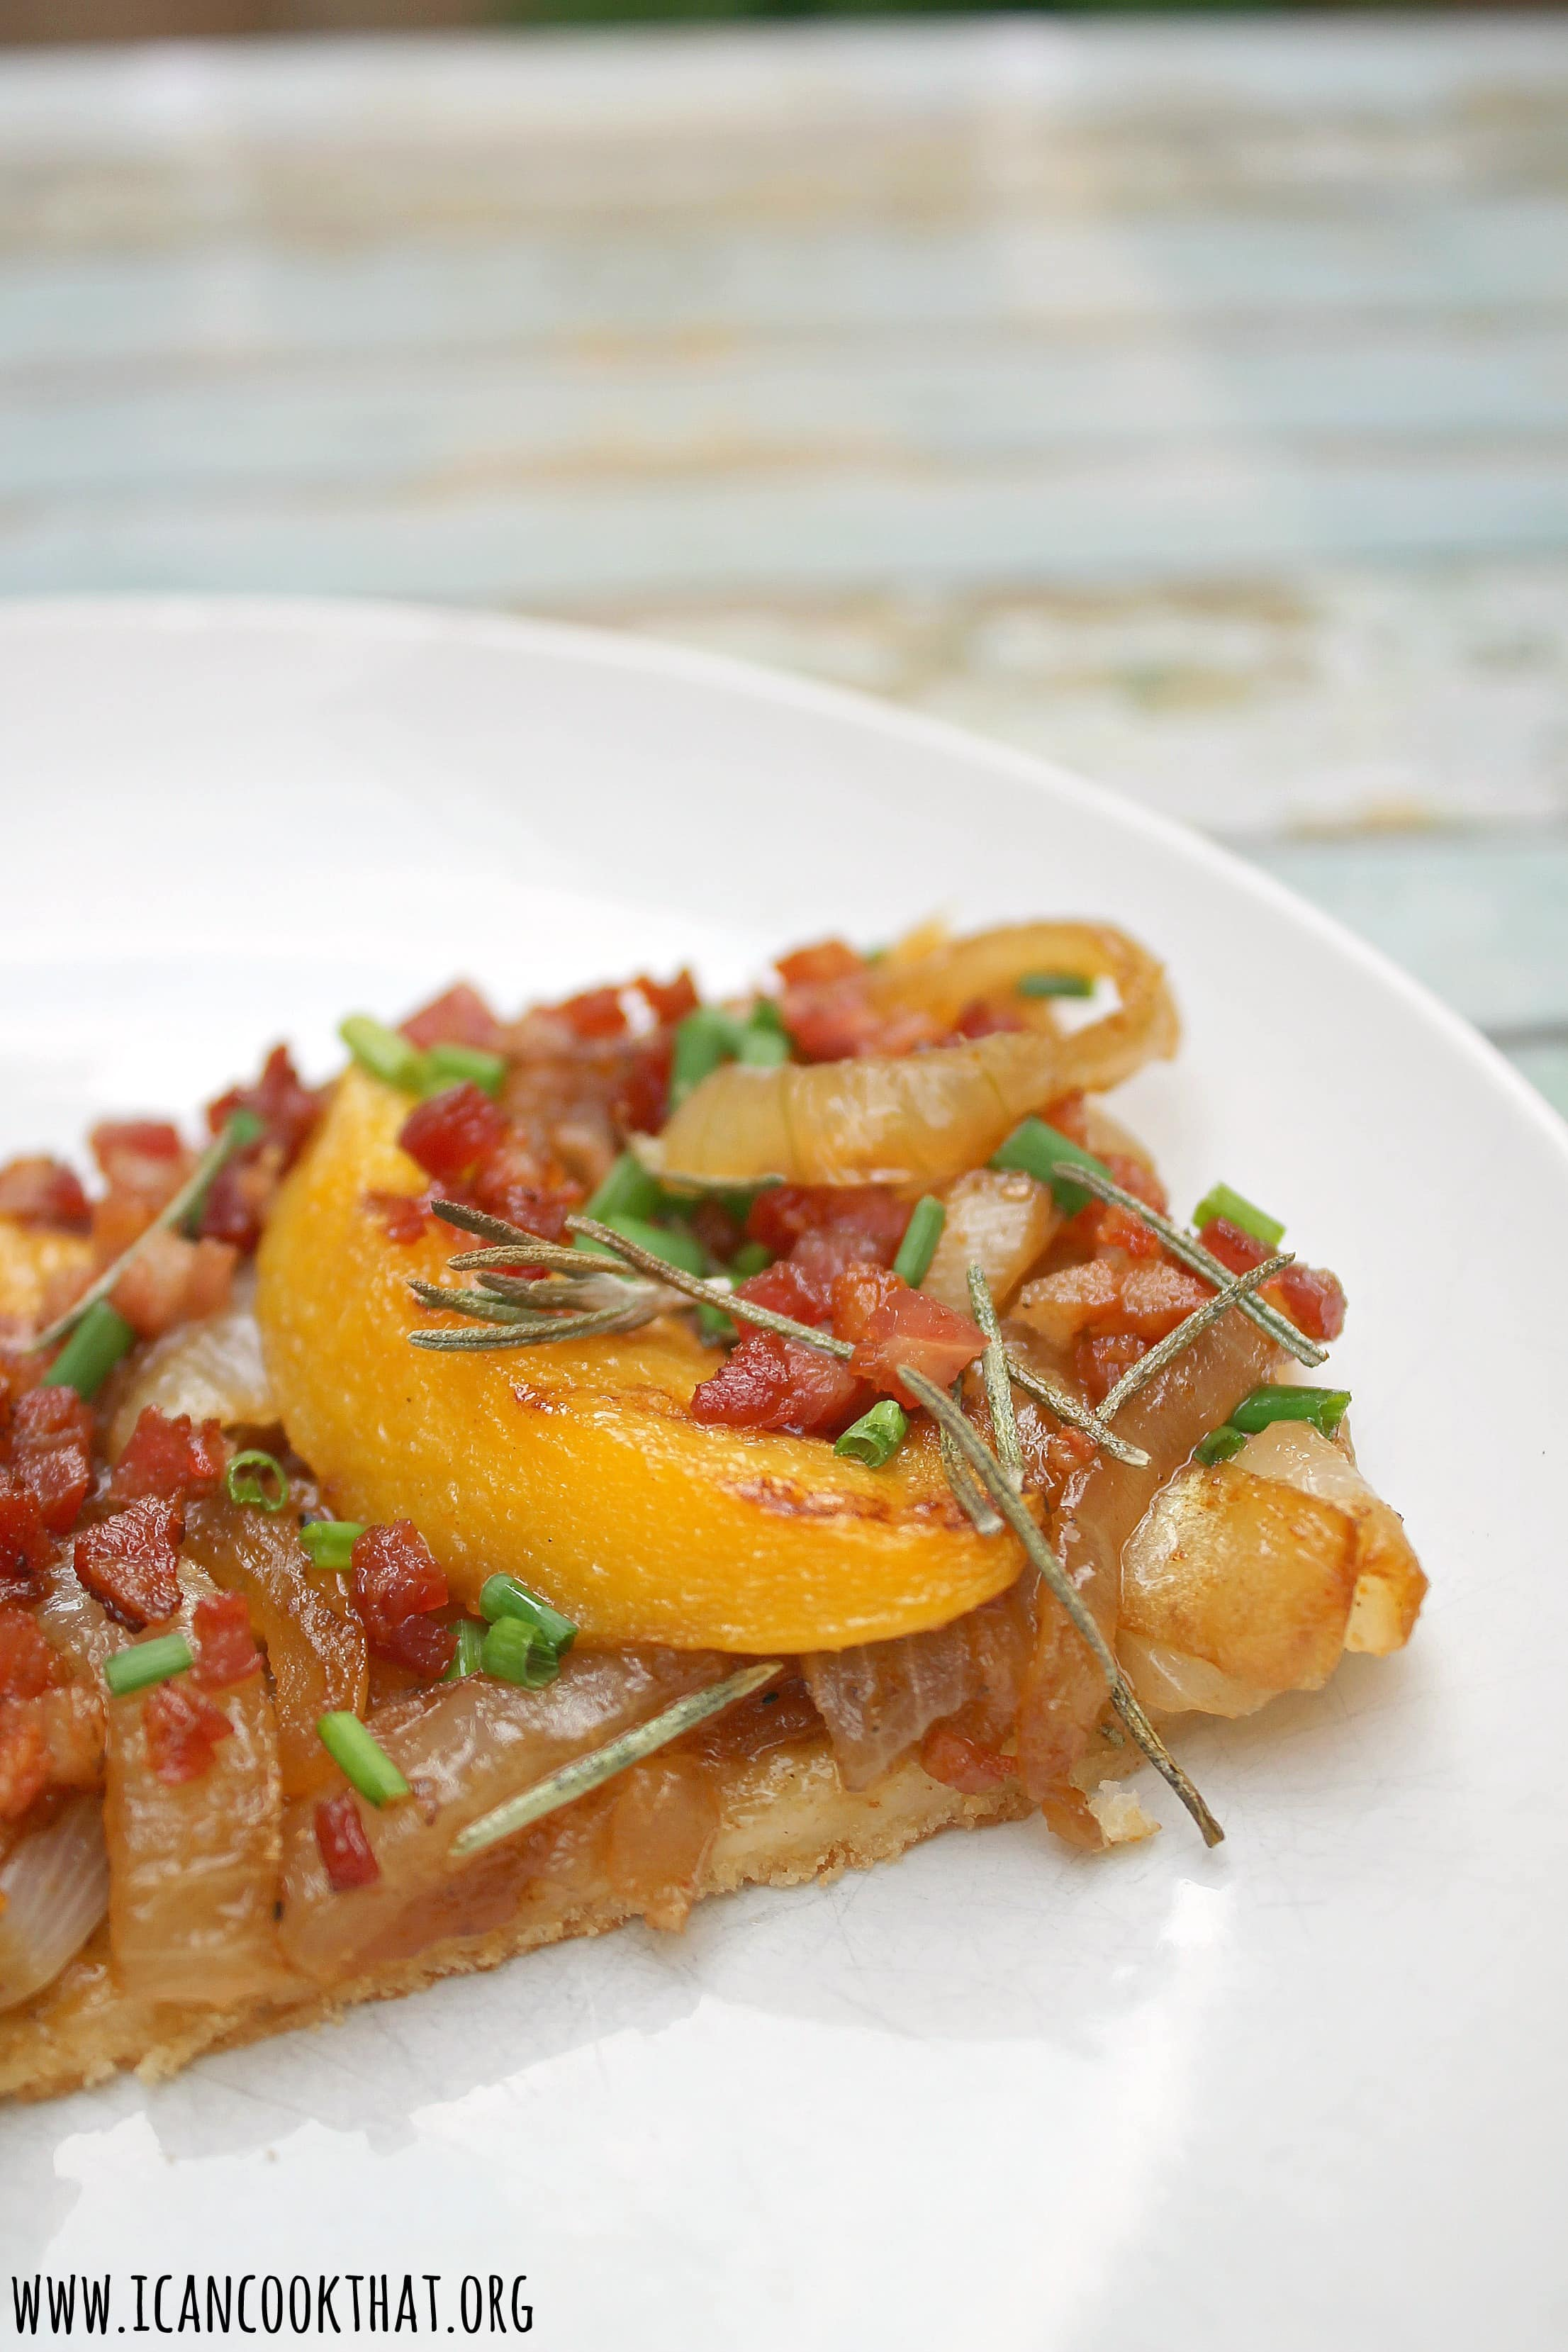 Peach, Vidalia Onion, and Pancetta Flatbread